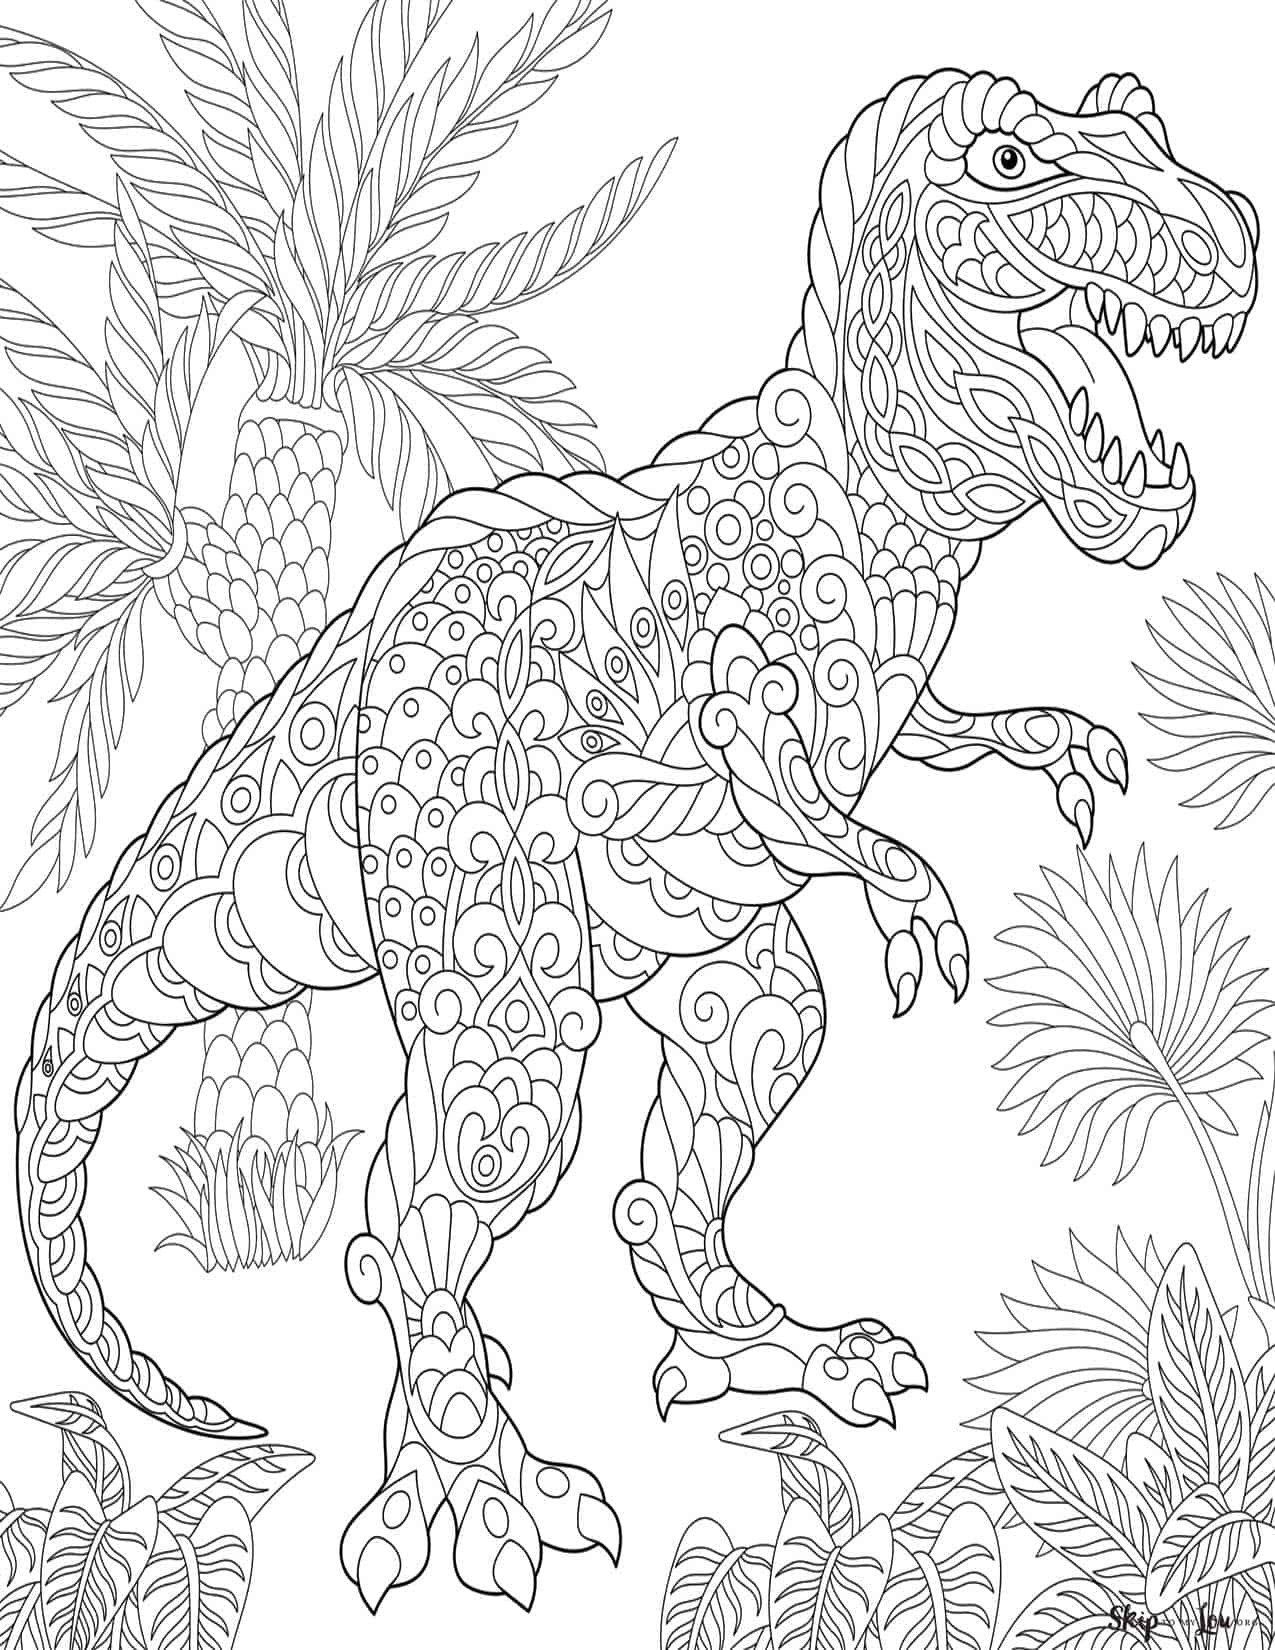 Dinosaur Coloring Pages to Print Dinosaur Coloring Pages